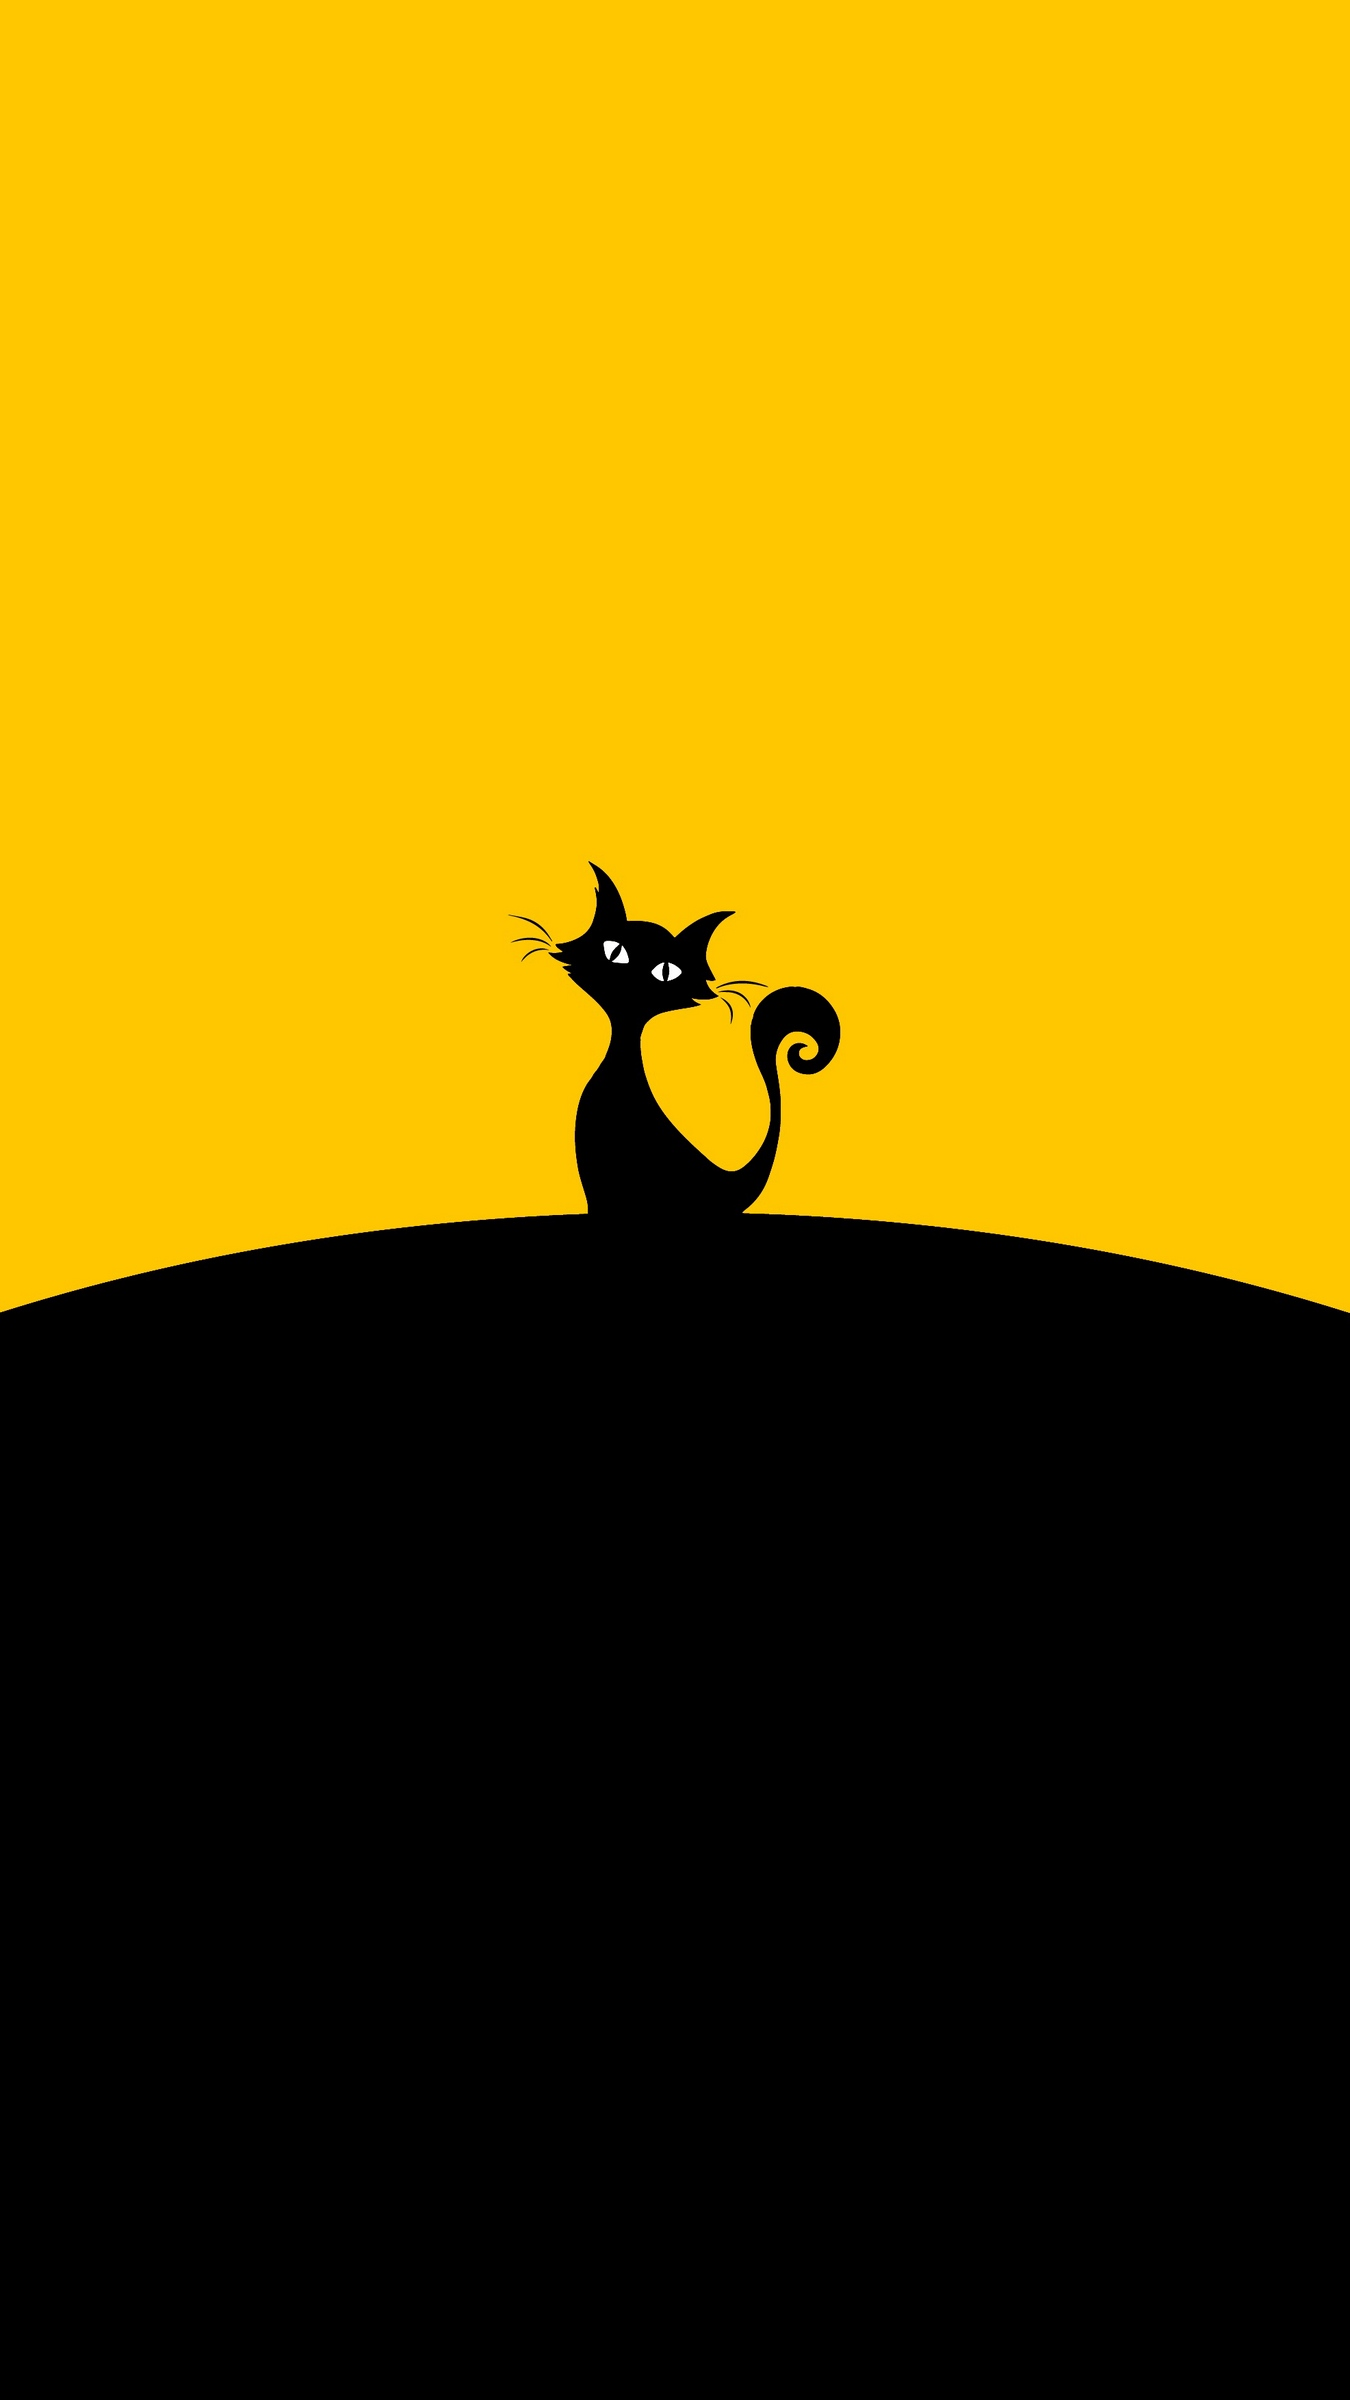 1350x2400 - Yellow and Black 17